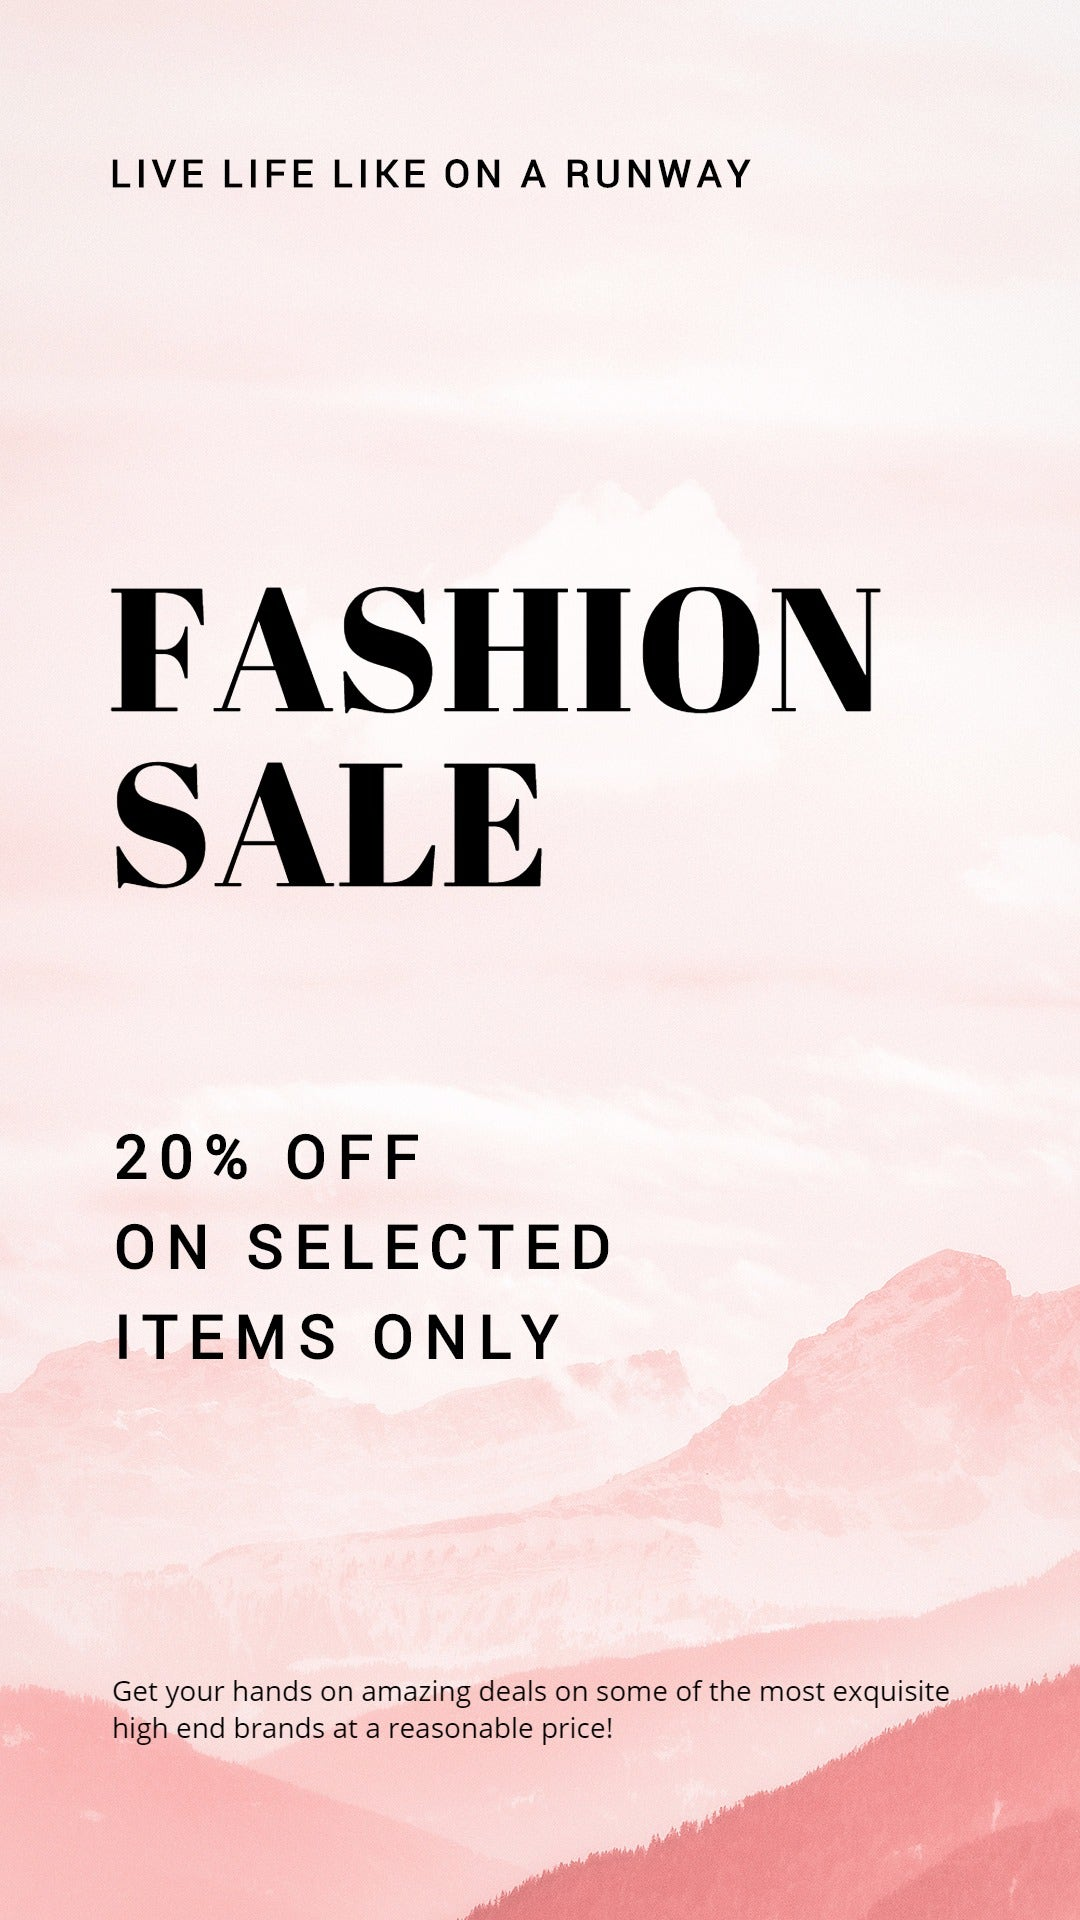 Blank Fashion Sale Instagram Story Template